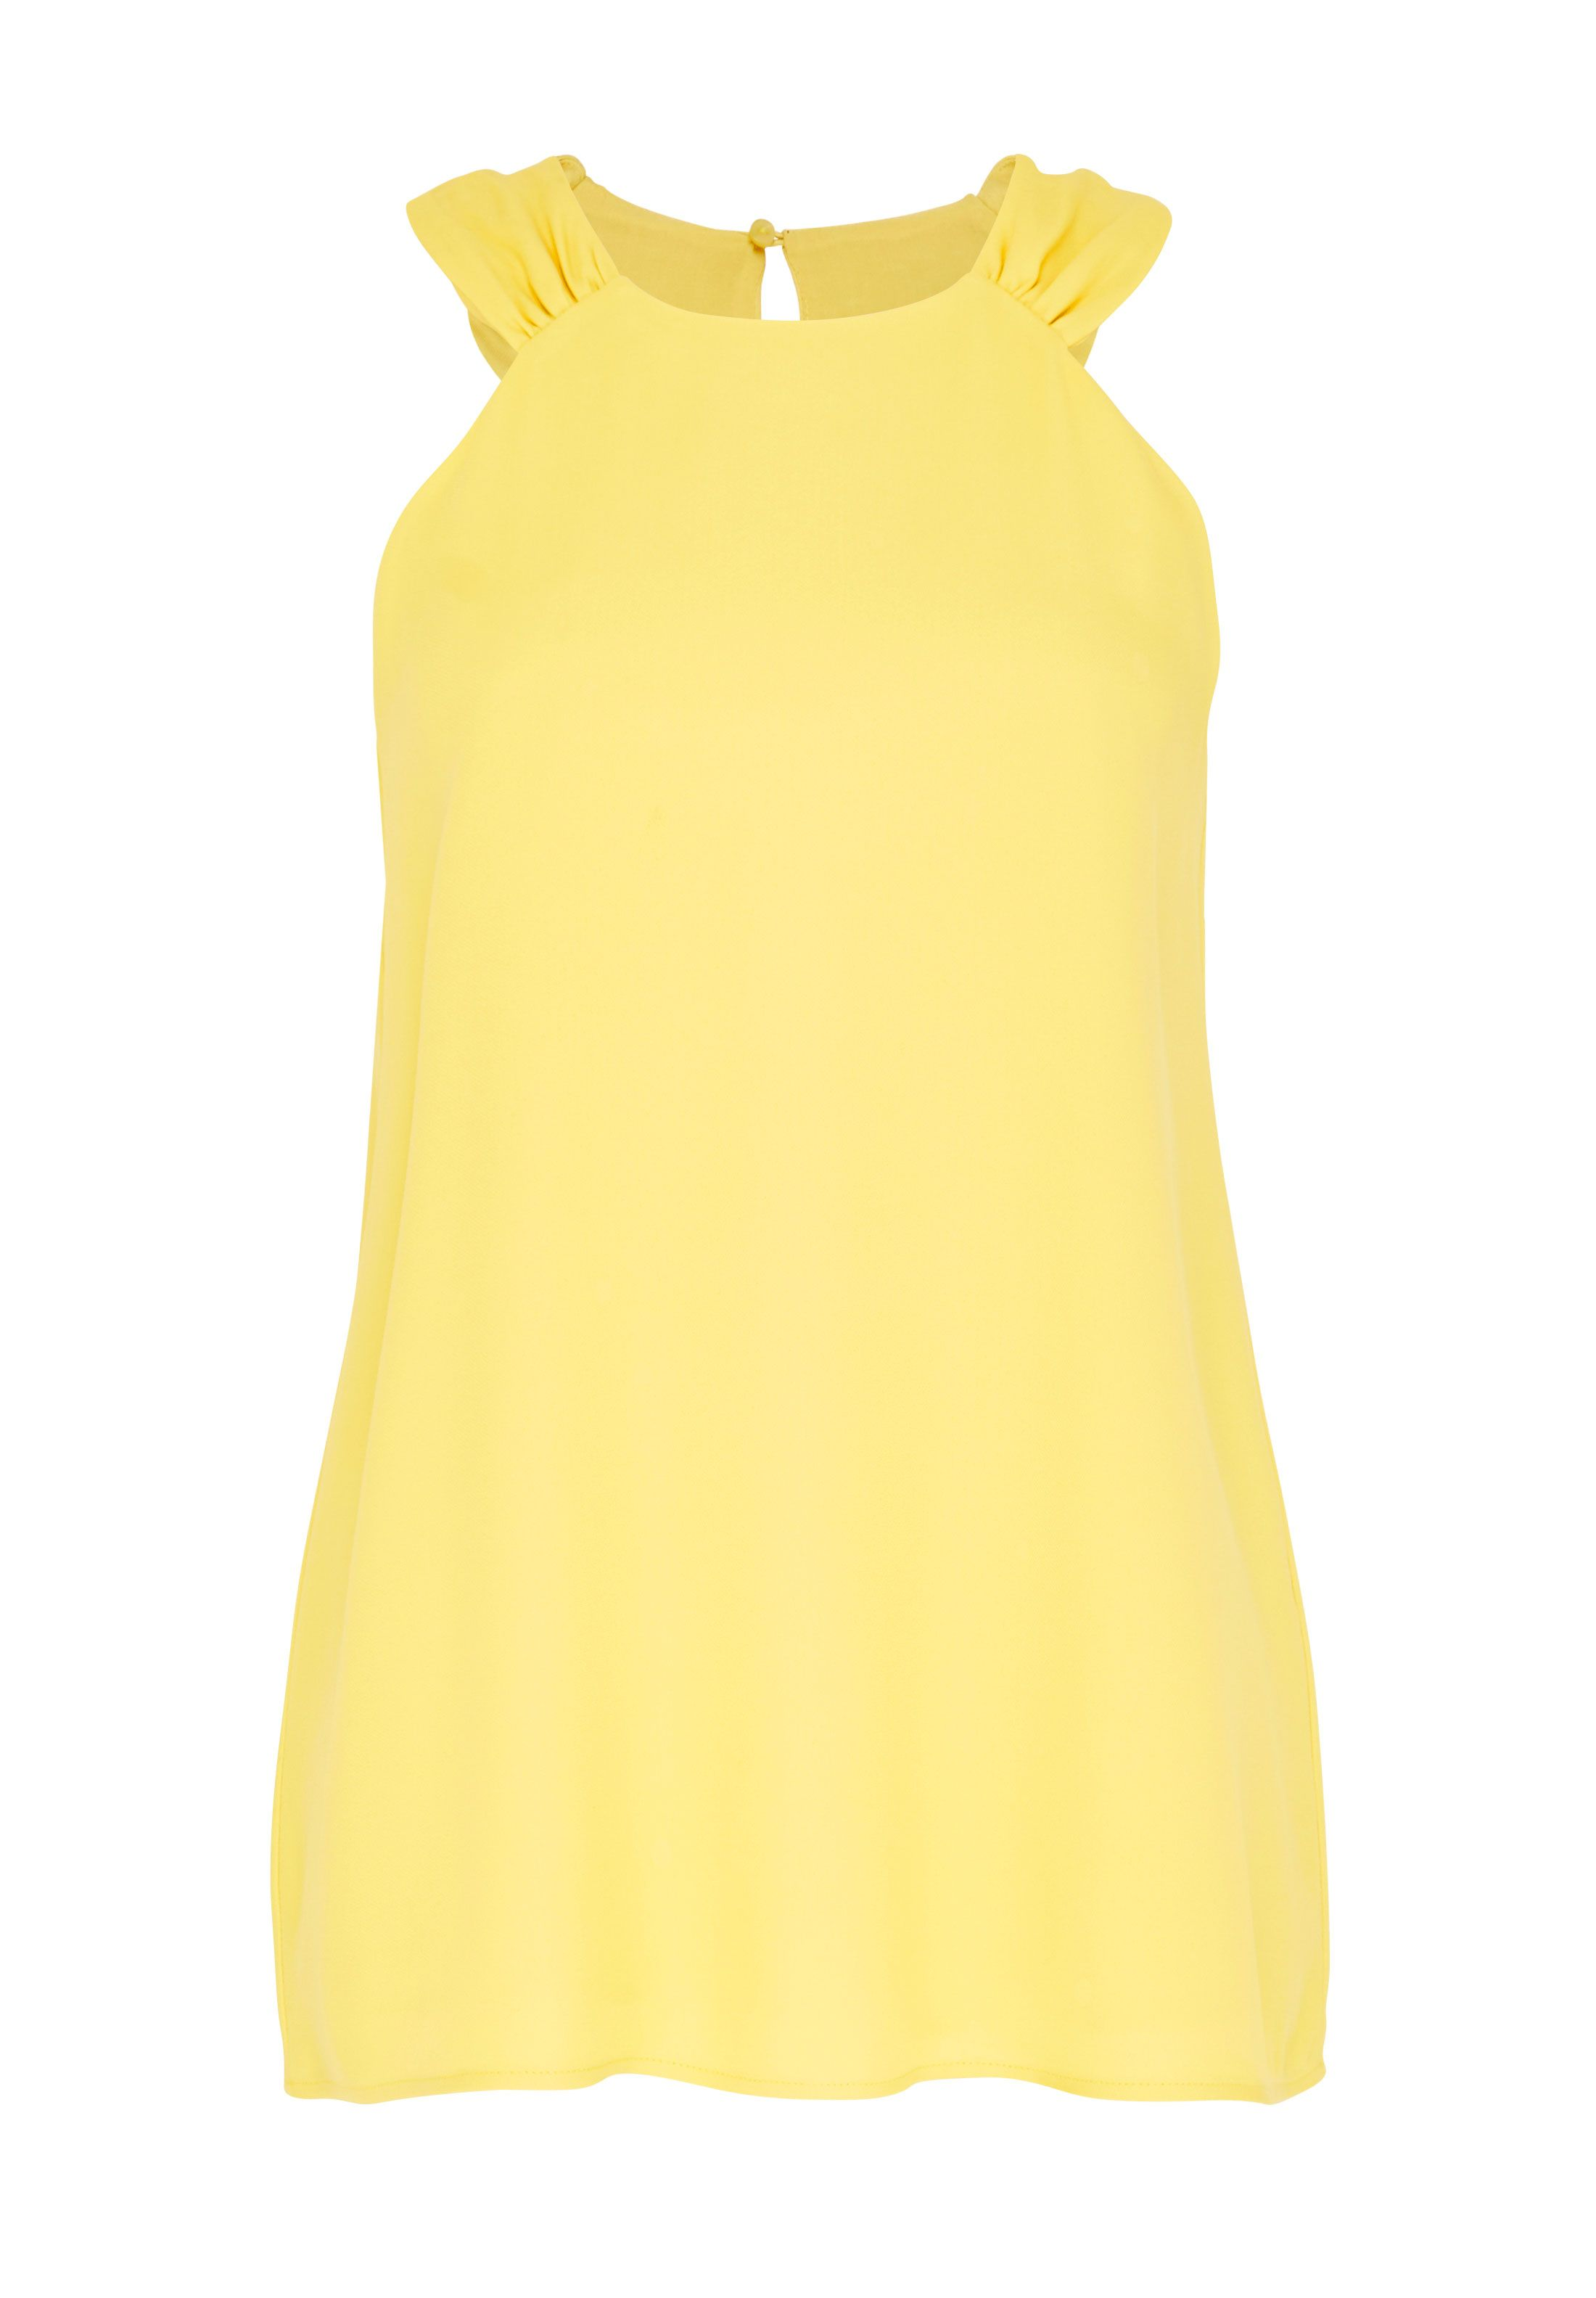 Hallhuber A-Line Top, Yellow